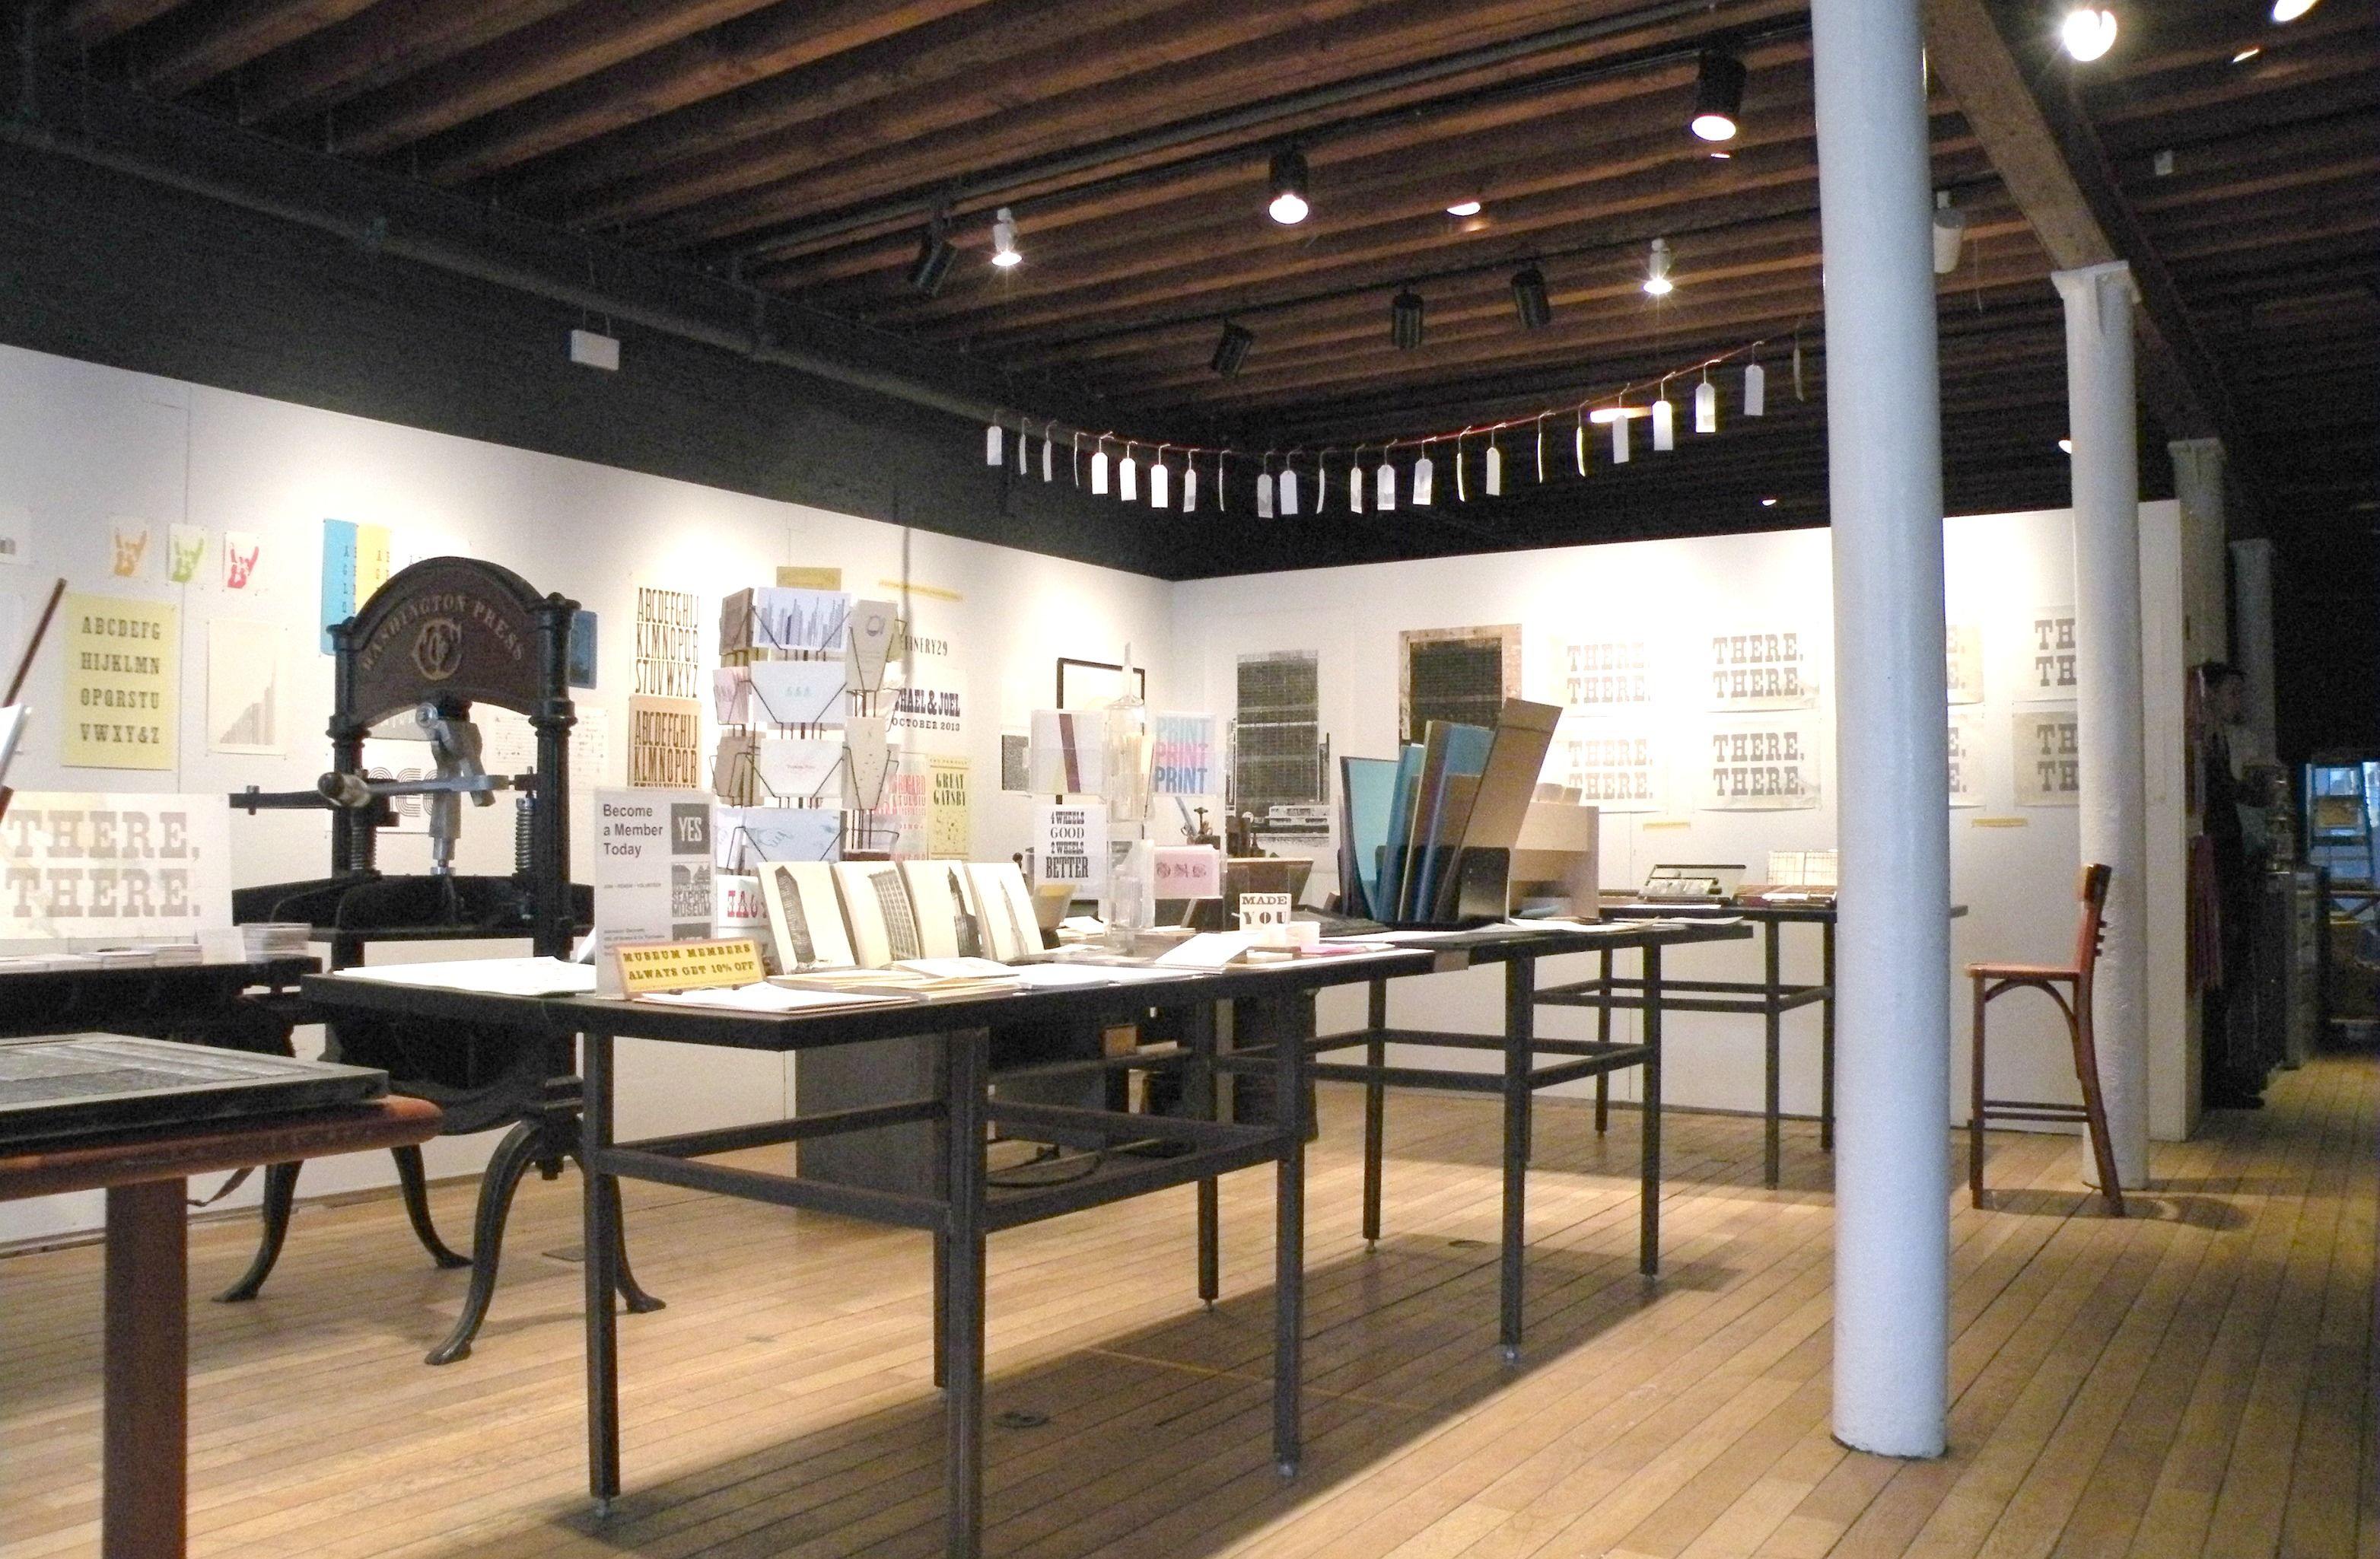 South Street Seaport Museum, South Street Seaport Historic District, Bowne & Co. Stationers, Captain Jonathan Boulware